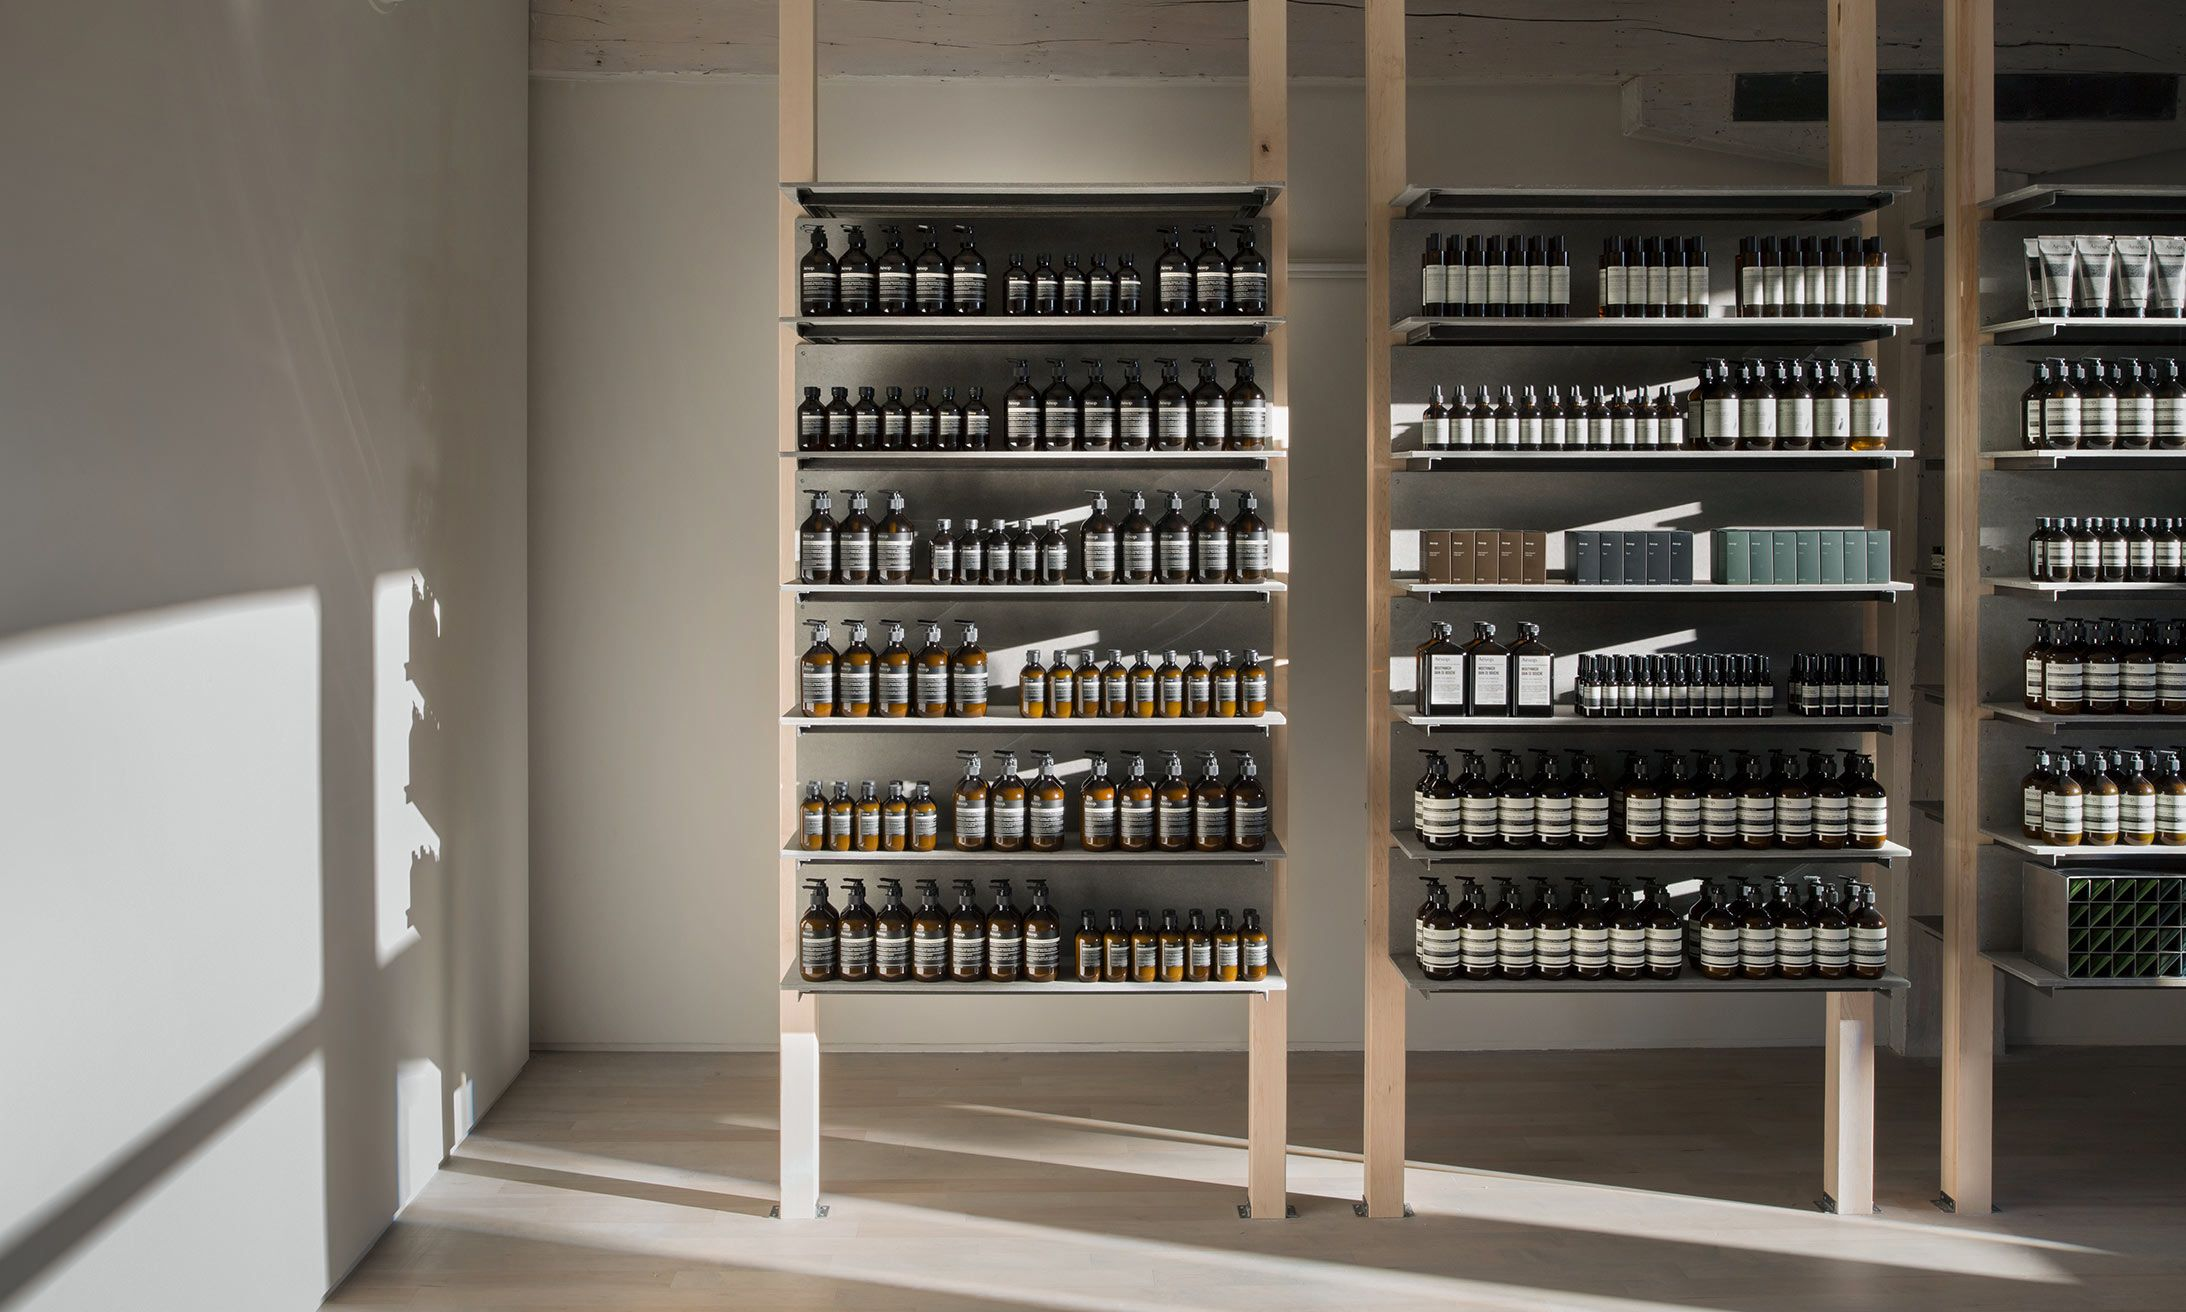 Vieux Montreal Montreal Canada Design Cosmetic Store Wine Rack